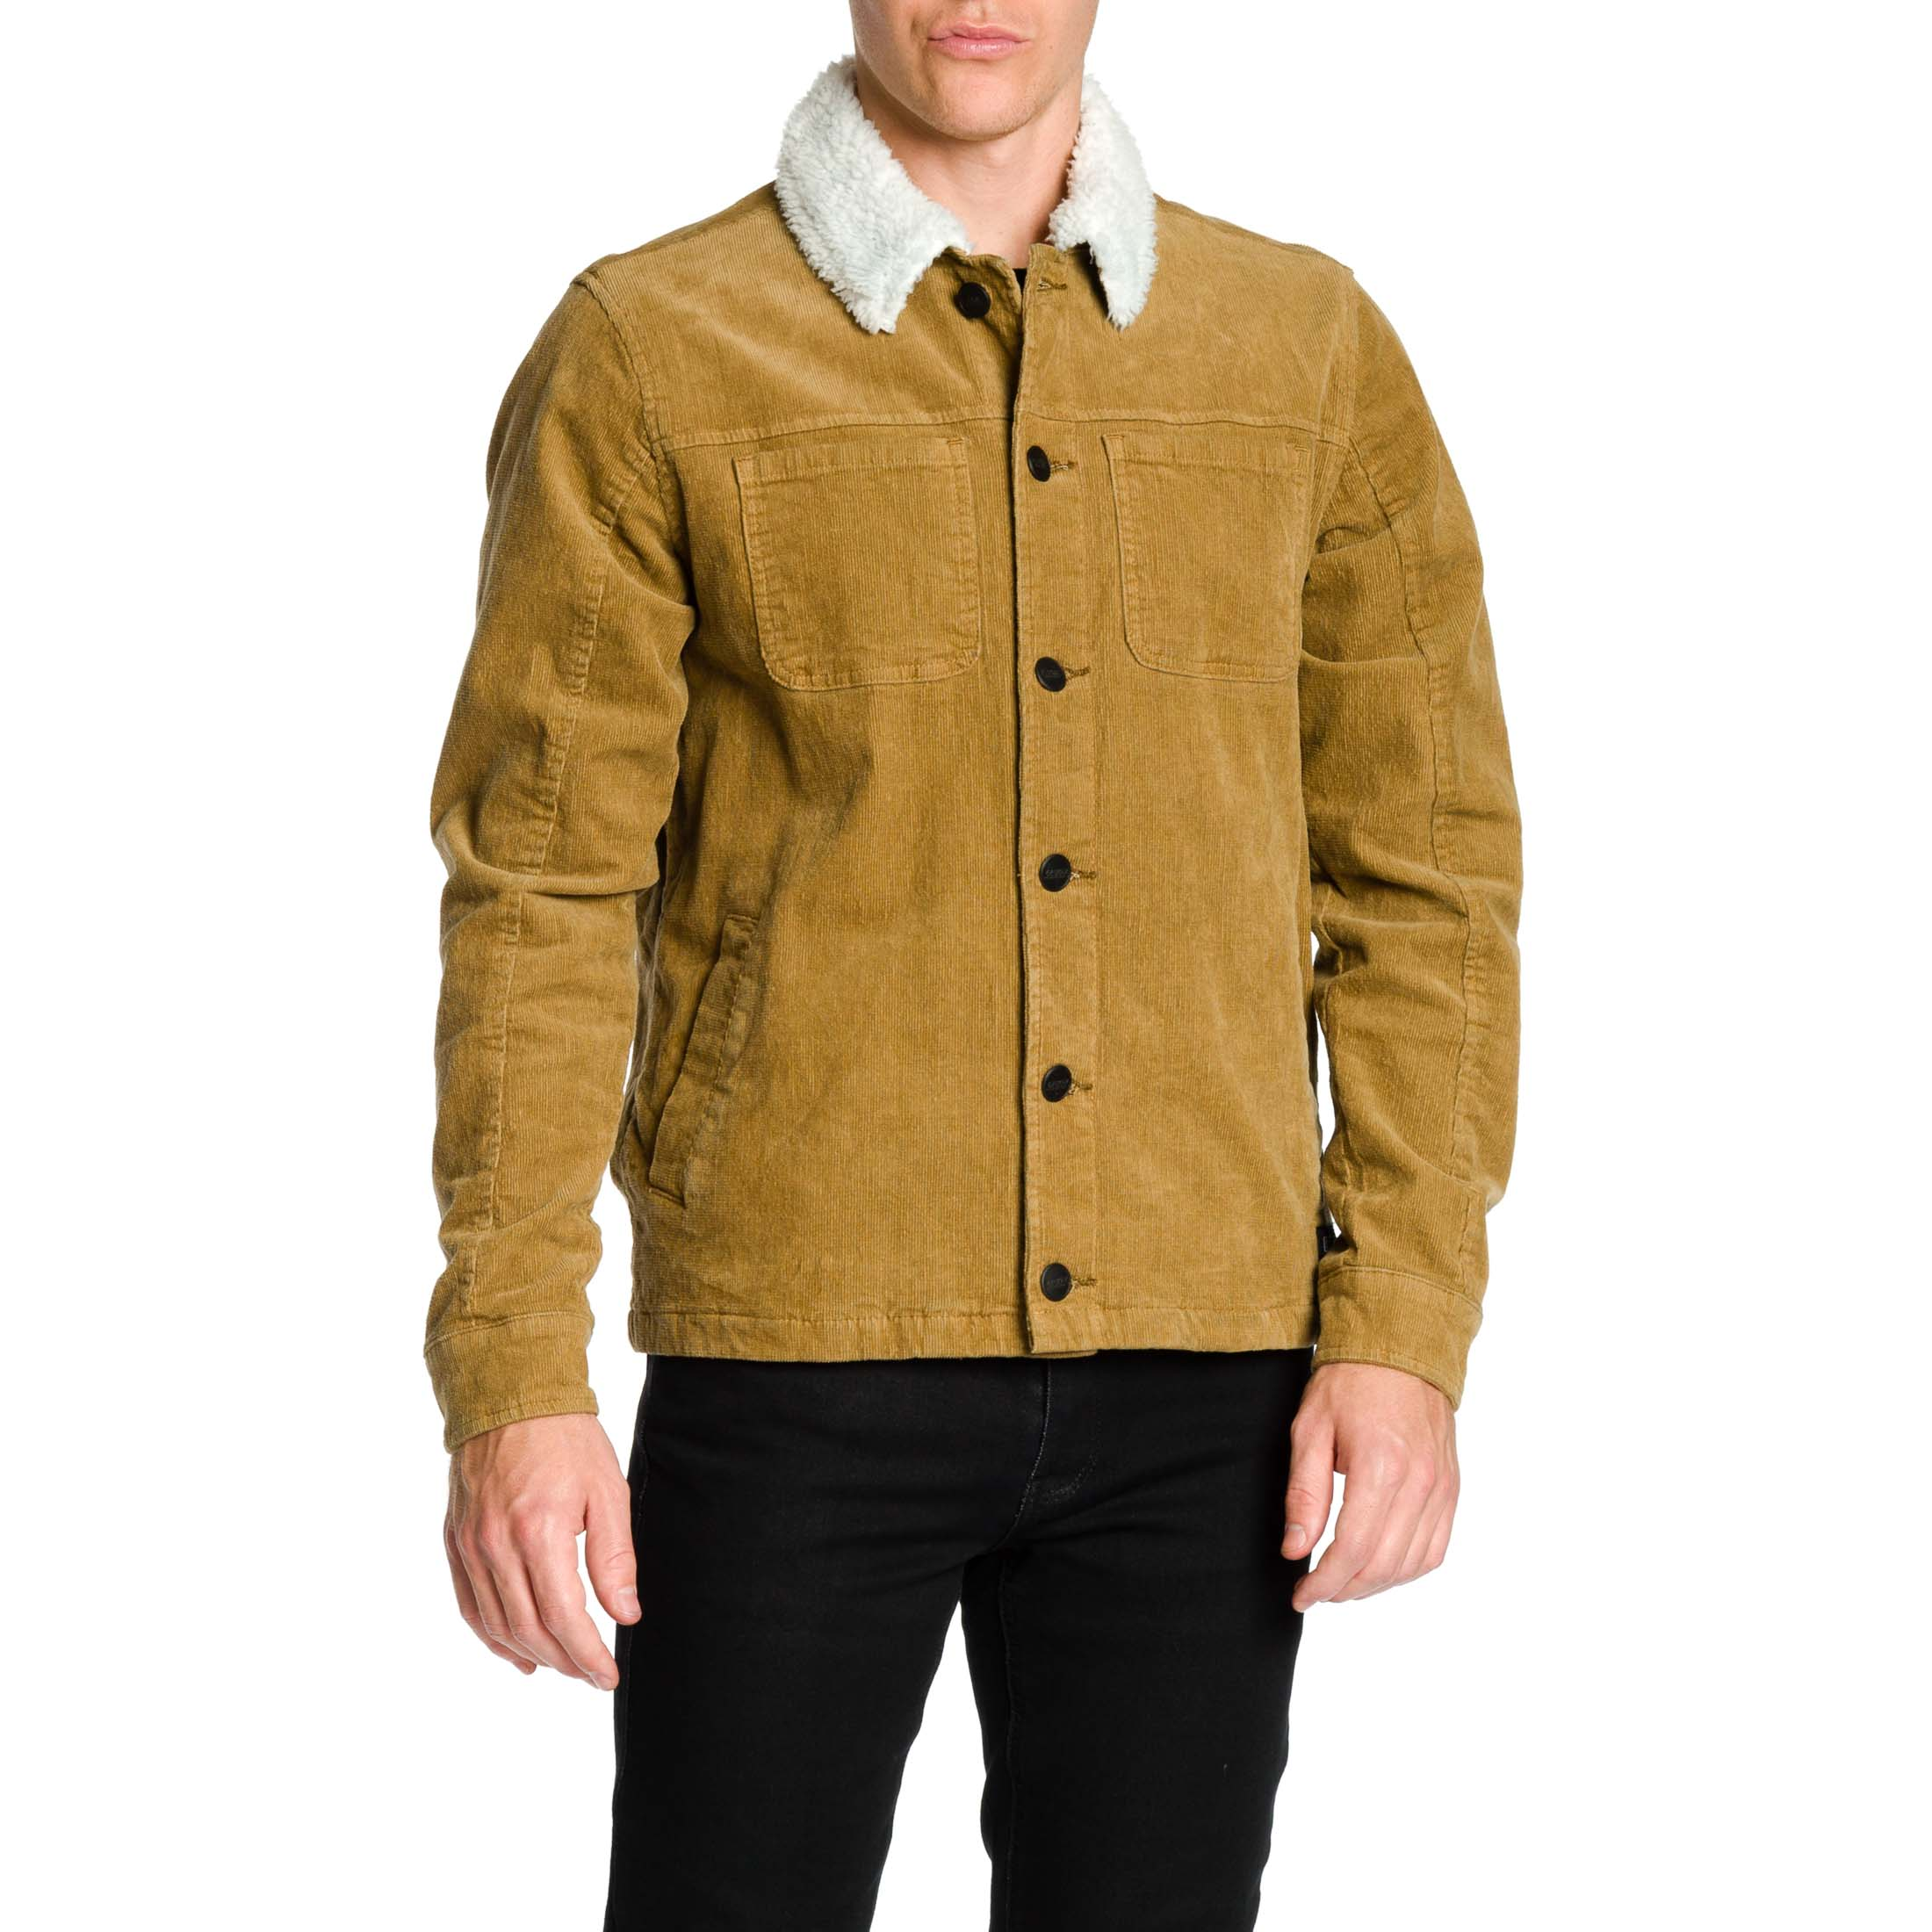 Karter Jacket - Tobacco - Ezekiel Clothing